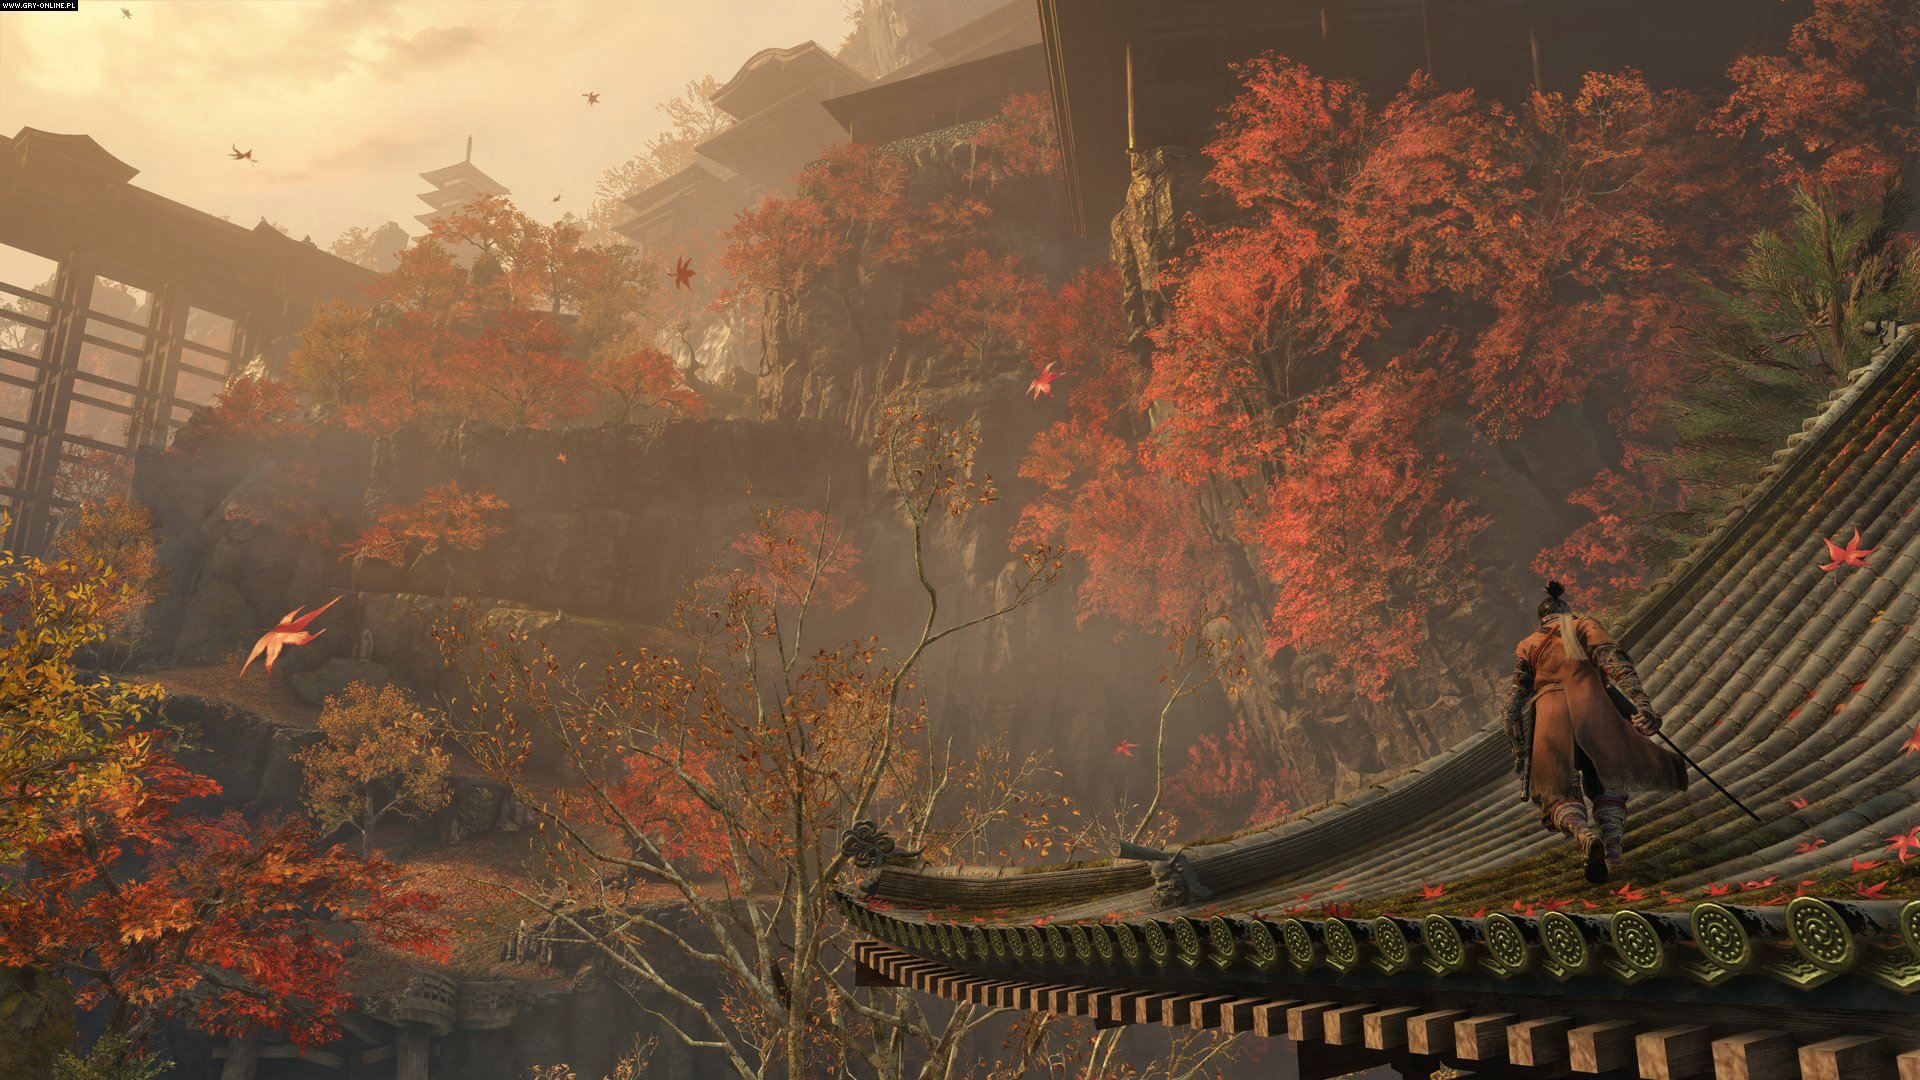 Sekiro: Shadows Die Twice PC, PS4, XONE Gry Screen 9/29, FromSoftware, Activision Blizzard